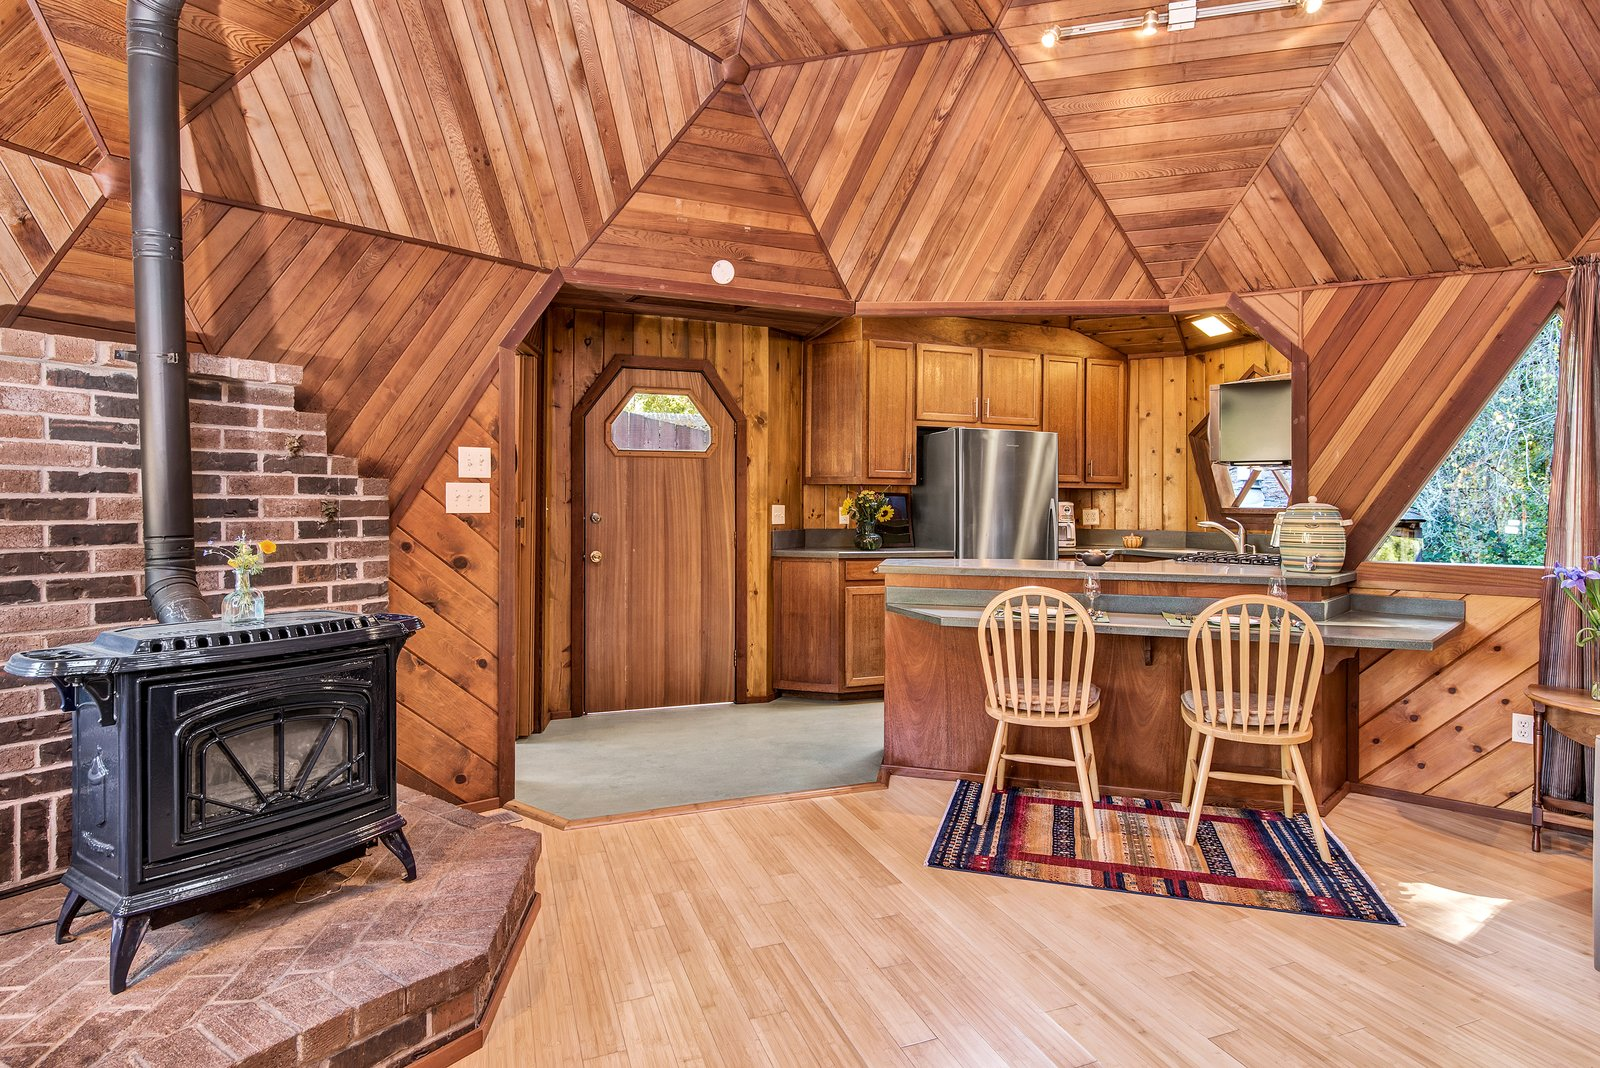 Dining Room, Track Lighting, Chair, Wood Burning Fireplace, Light Hardwood Floor, Rug Floor, Stools, Bar, and Ceiling Lighting The wood-burning stove keeps the home warm on cool nights.  Best Photos from A Geodesic Getaway in Northern California Asks $475K